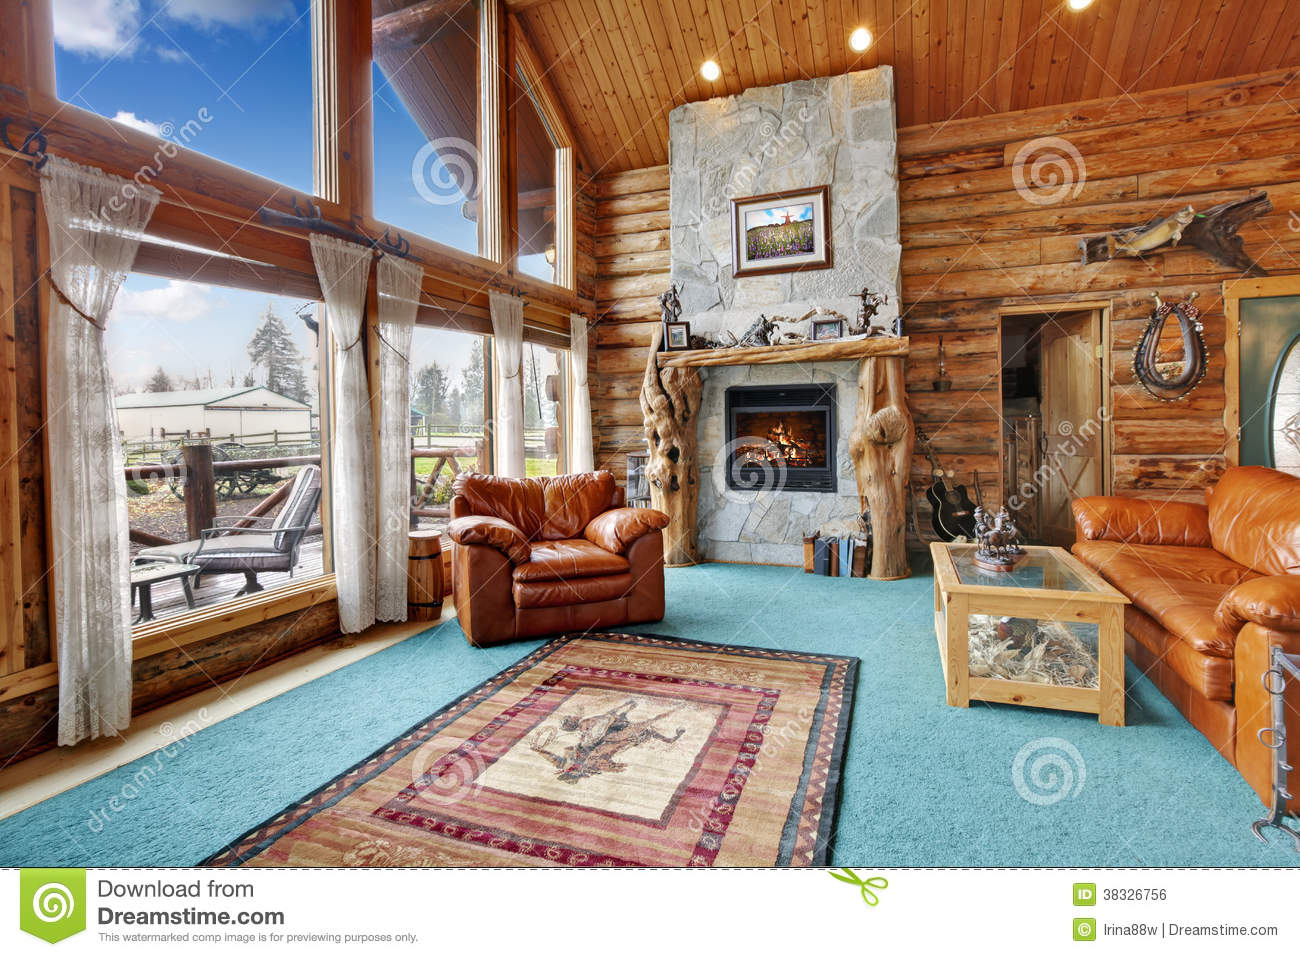 log cabin living room royalty free stock image - Log Cabin Living Room